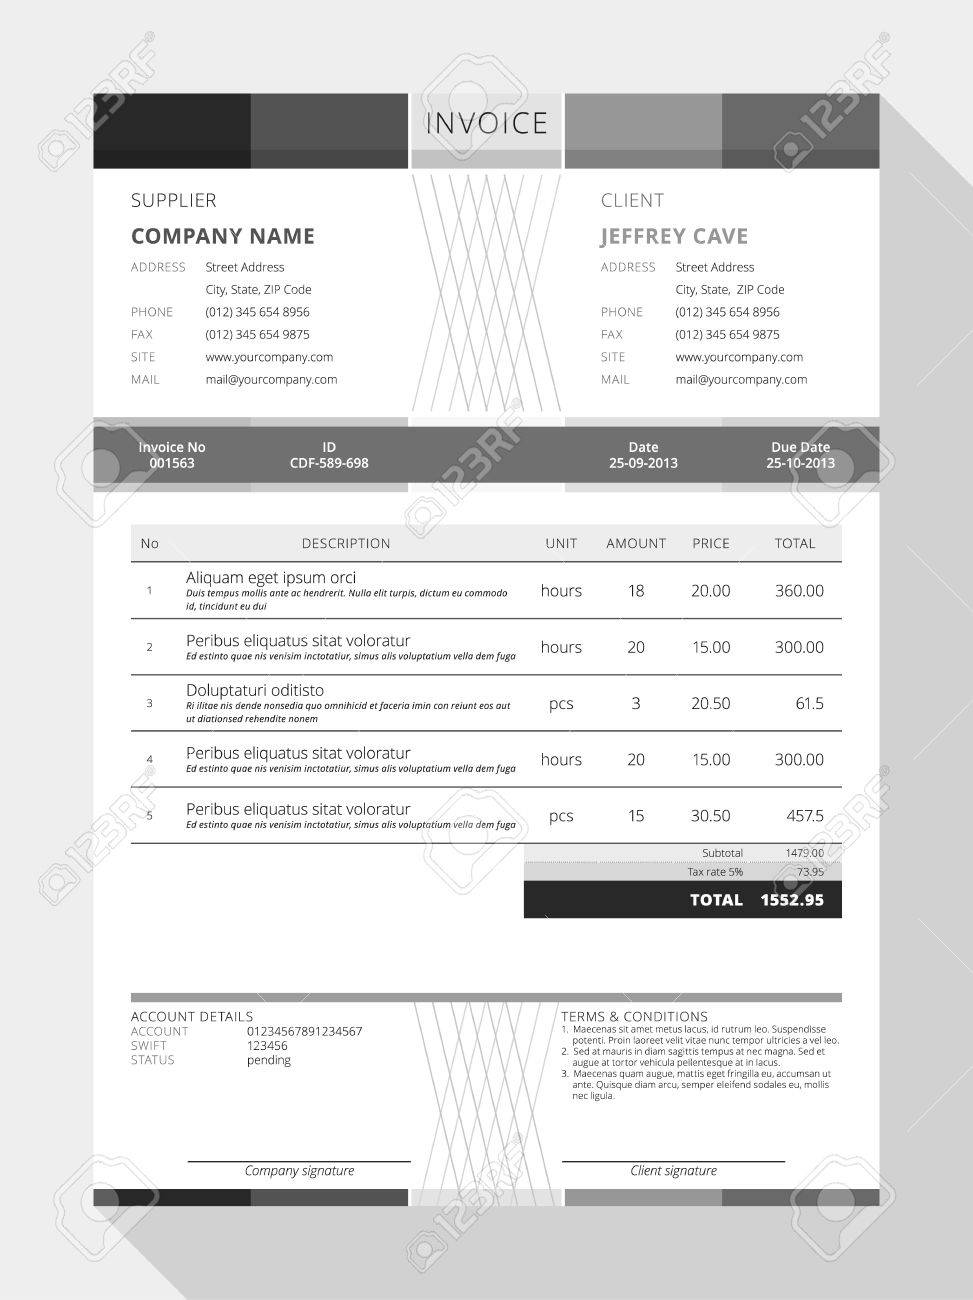 Angkajituus  Personable Design An Invoice  Professional Graphic Design Invoice  With Handsome Vector Customizable Invoice Form Template Design Vector   Design An Invoice With Extraordinary Invoice Format Word Also Free Printable Invoice Template Microsoft Word In Addition Artist Invoice And Consumer Reports Dealer Invoice As Well As Invoice Supplier Additionally Pay Invoice Ebay From Happytomco With Angkajituus  Handsome Design An Invoice  Professional Graphic Design Invoice  With Extraordinary Vector Customizable Invoice Form Template Design Vector   Design An Invoice And Personable Invoice Format Word Also Free Printable Invoice Template Microsoft Word In Addition Artist Invoice From Happytomco